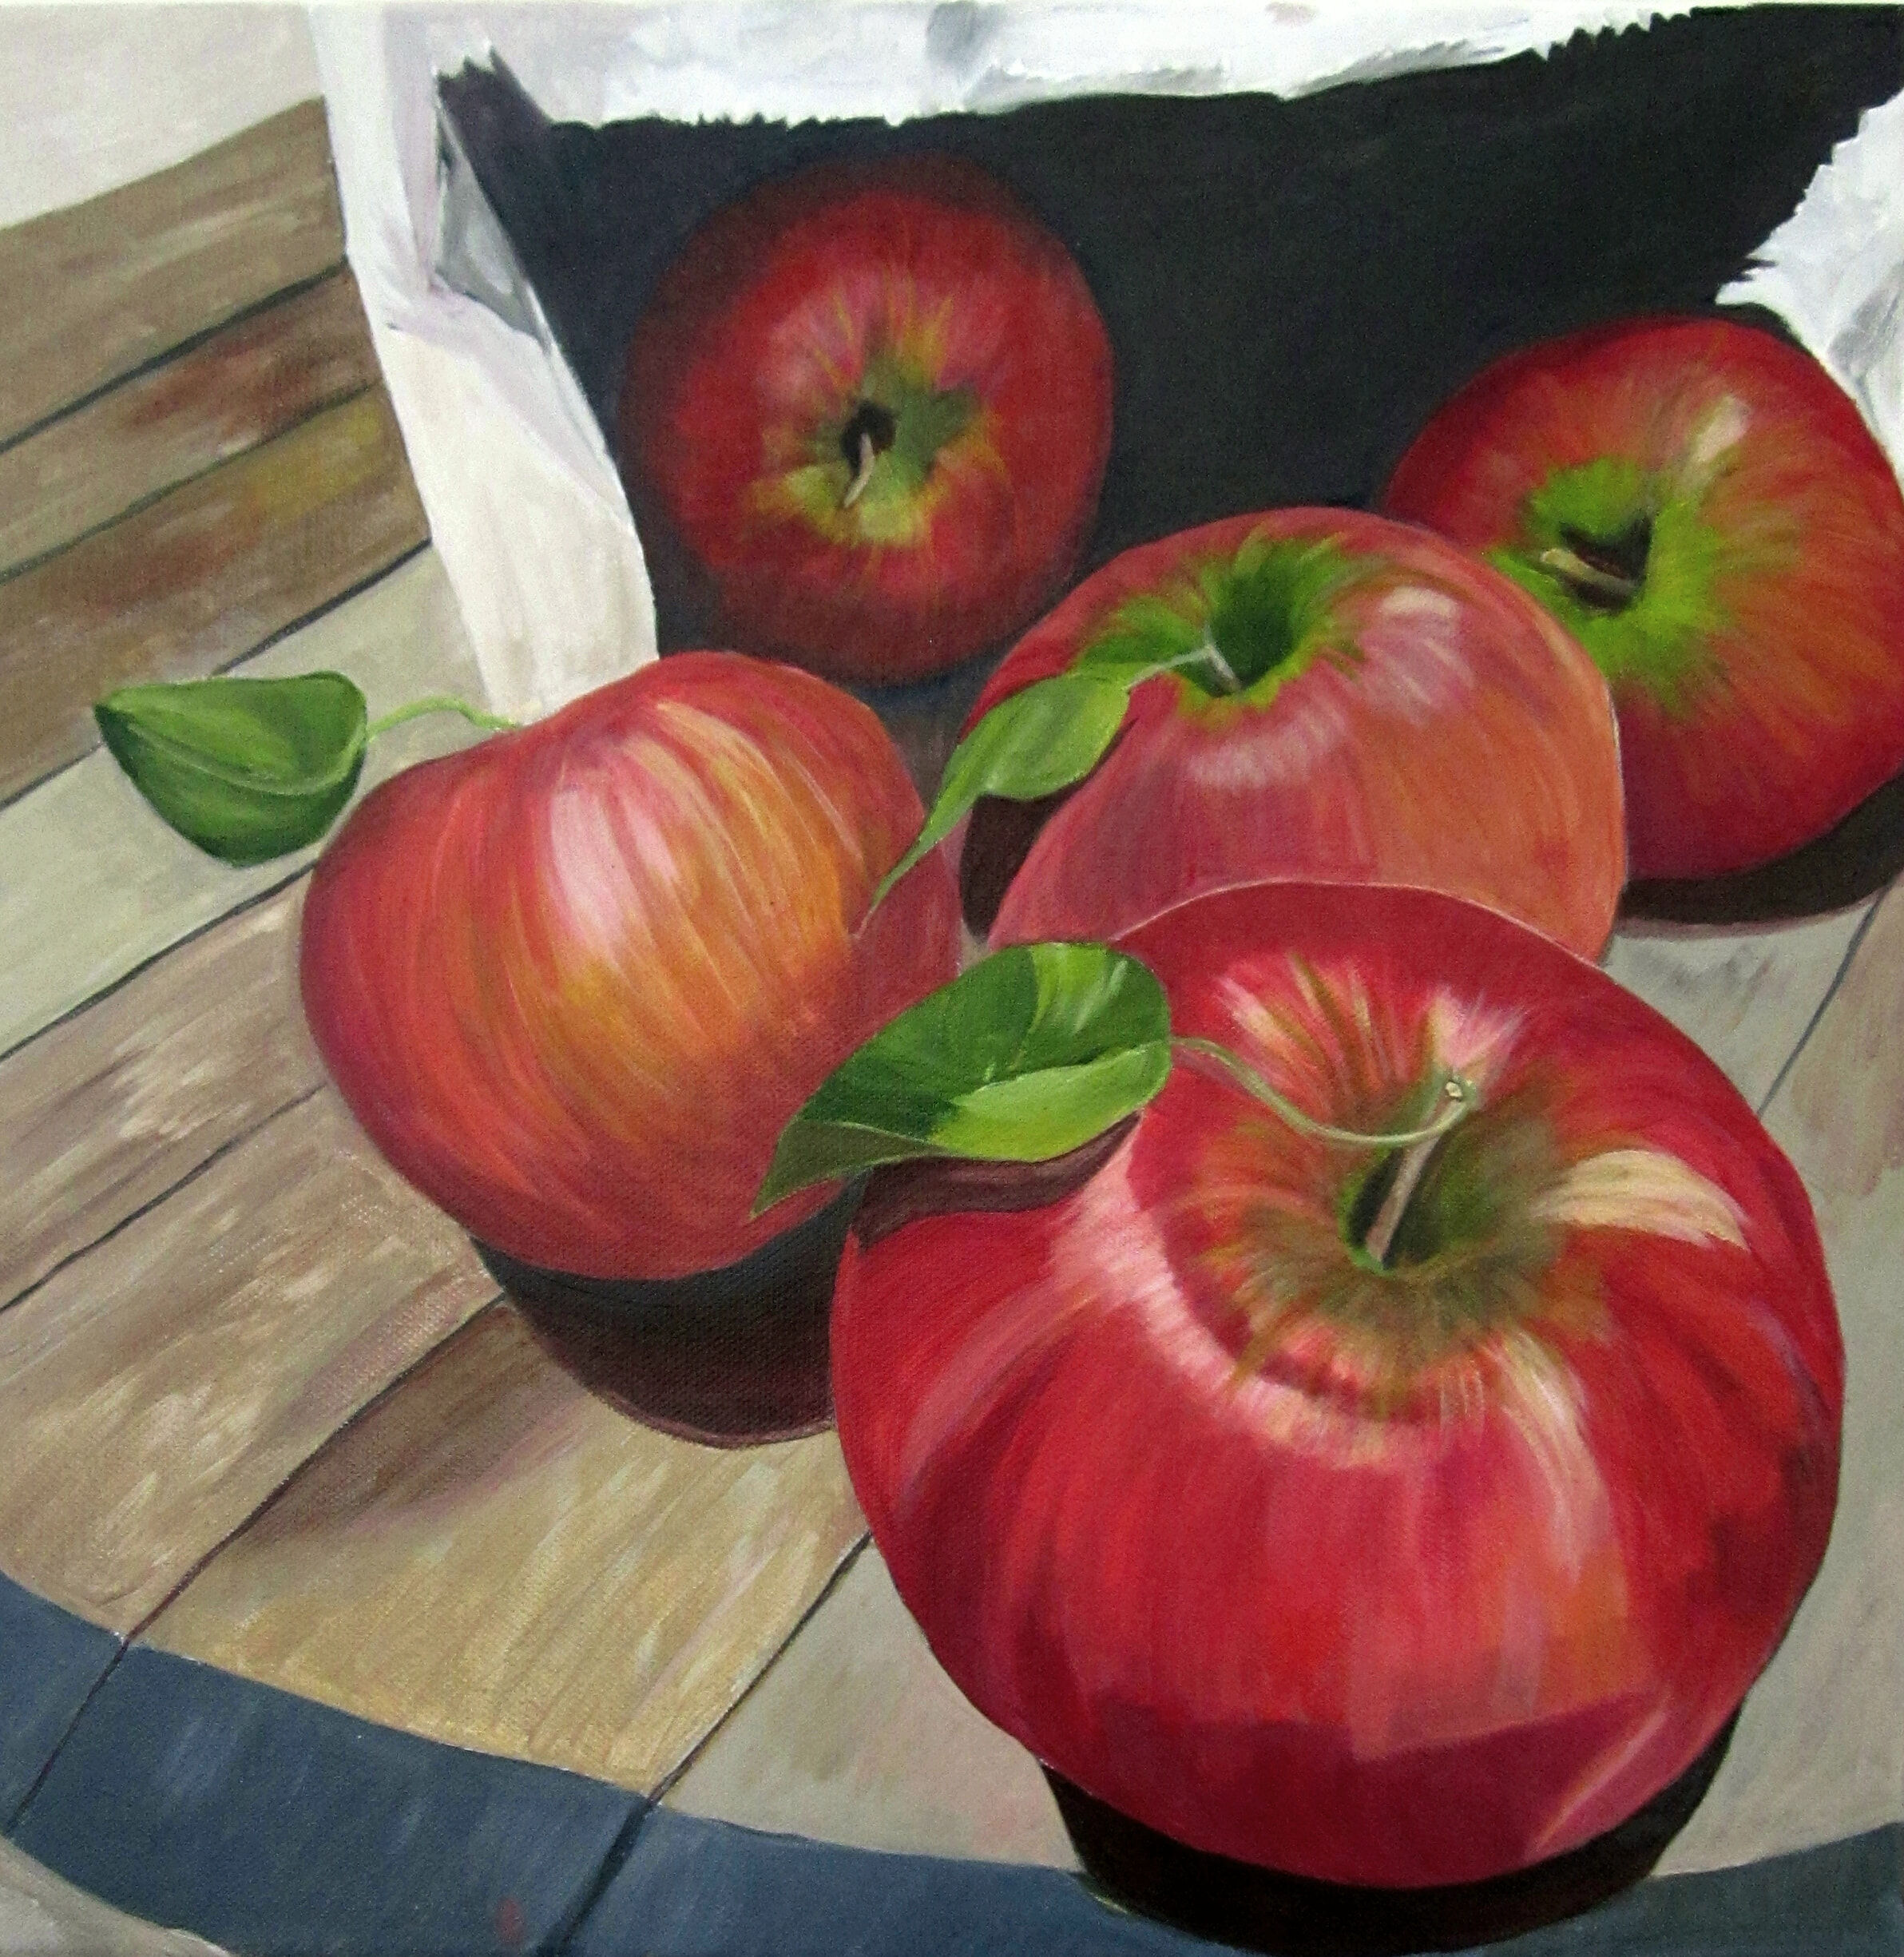 acrylic painting of red delicious apples by artist Shona Jones